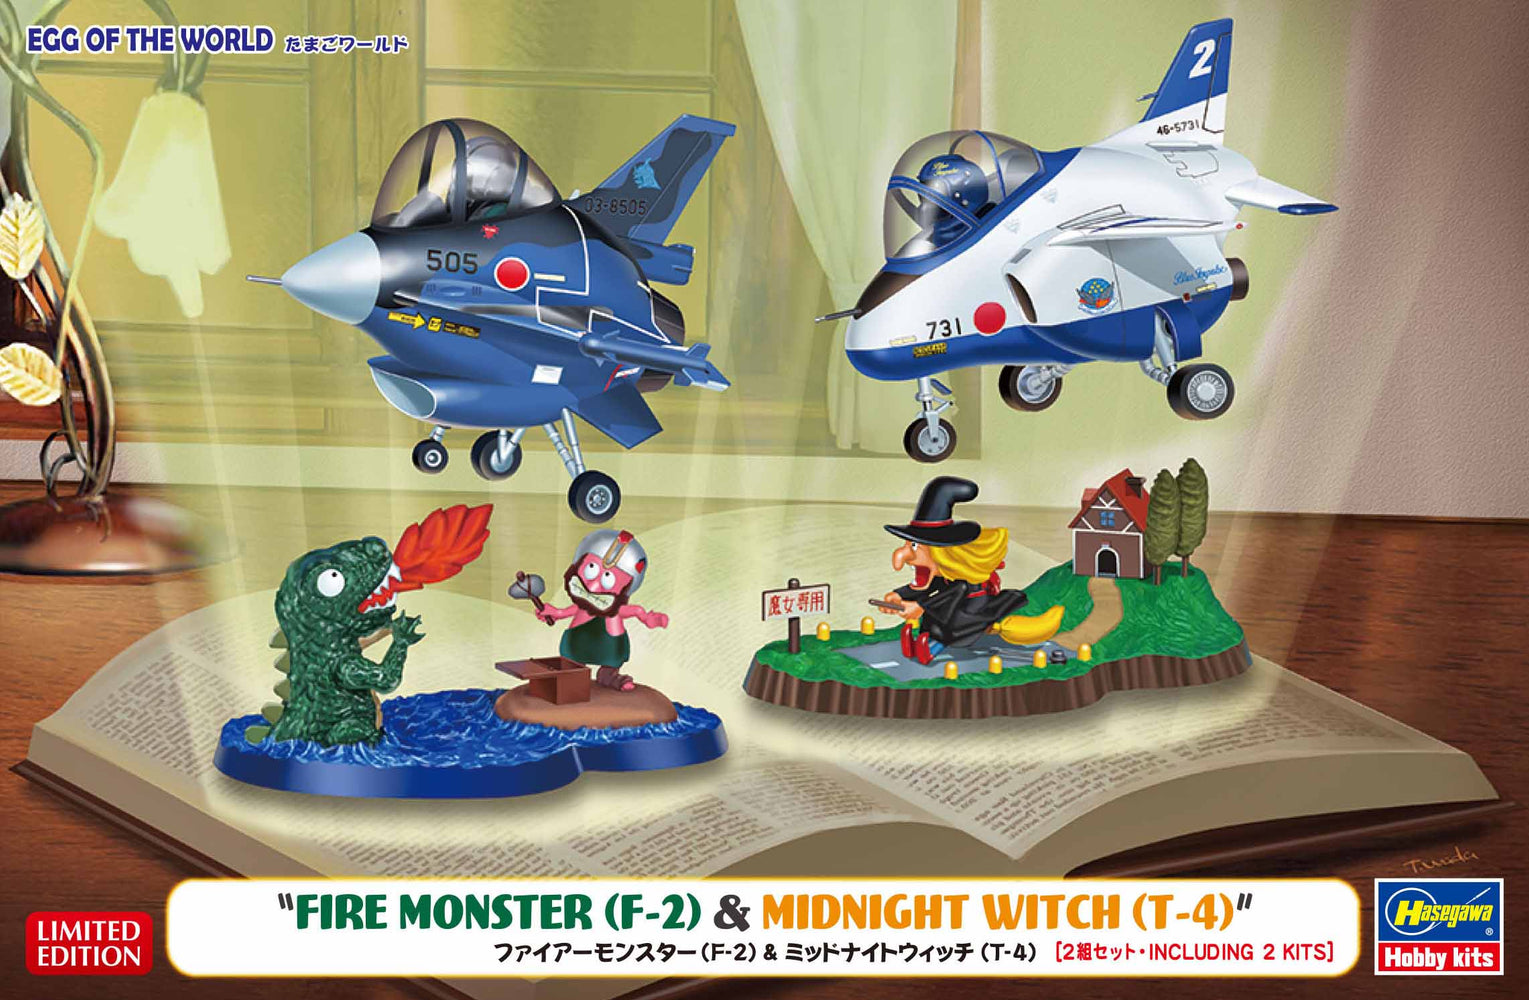 "EGG OF THE WORLD ""FIRE MONSTER (F-2) & MIDNIGHT WITCH (T-4)"" (Two kits in the box) HASEGAWA 60518"